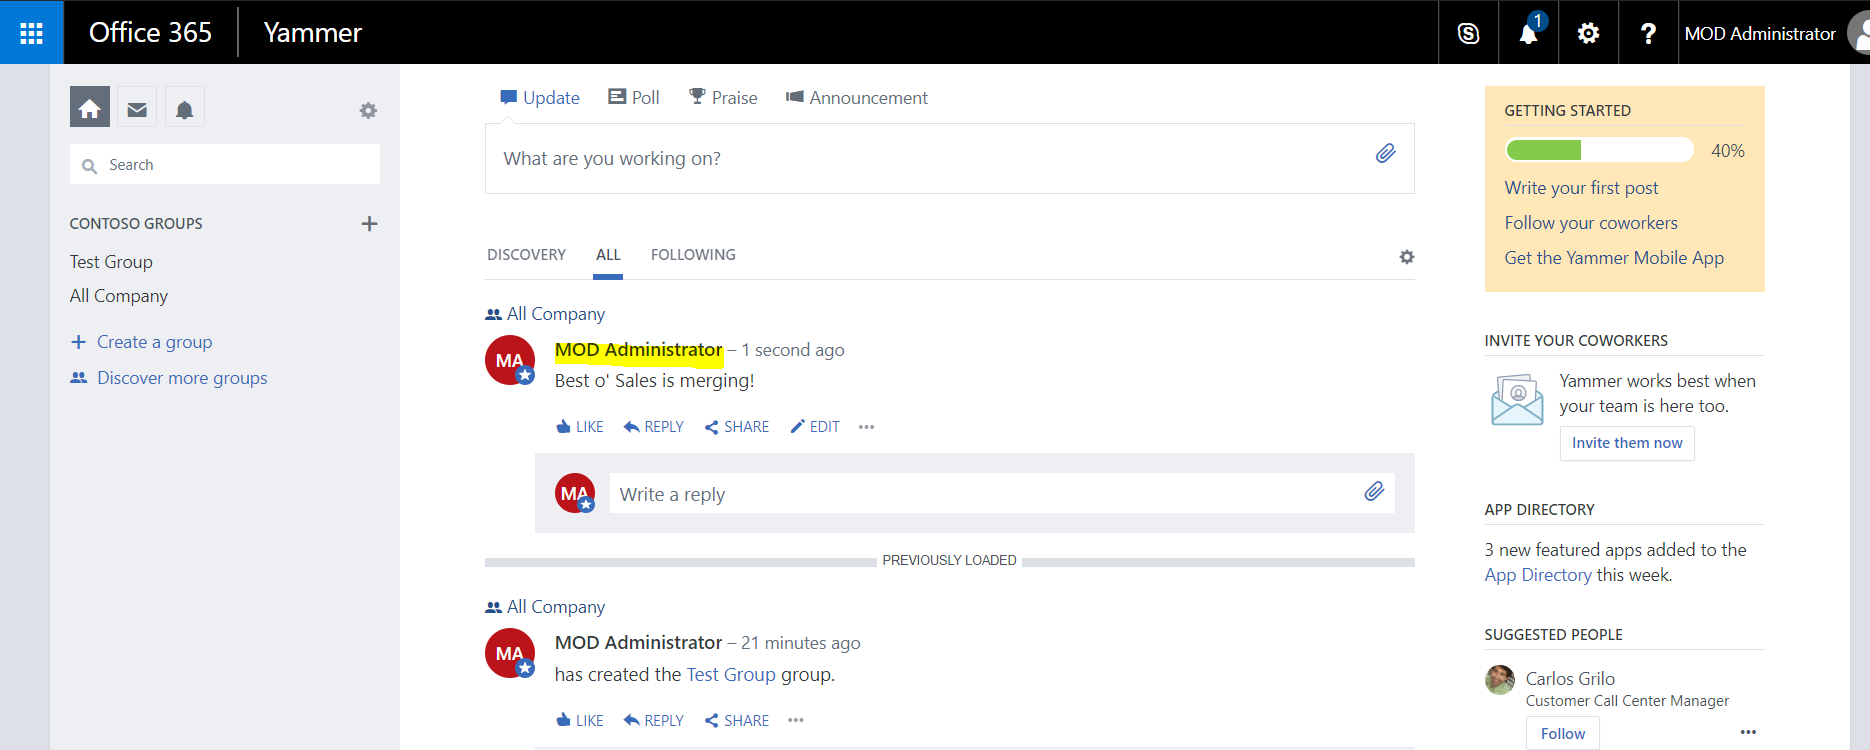 Connecting dynamics 365 to yammer carl de souza - Yammer office 365 integration ...